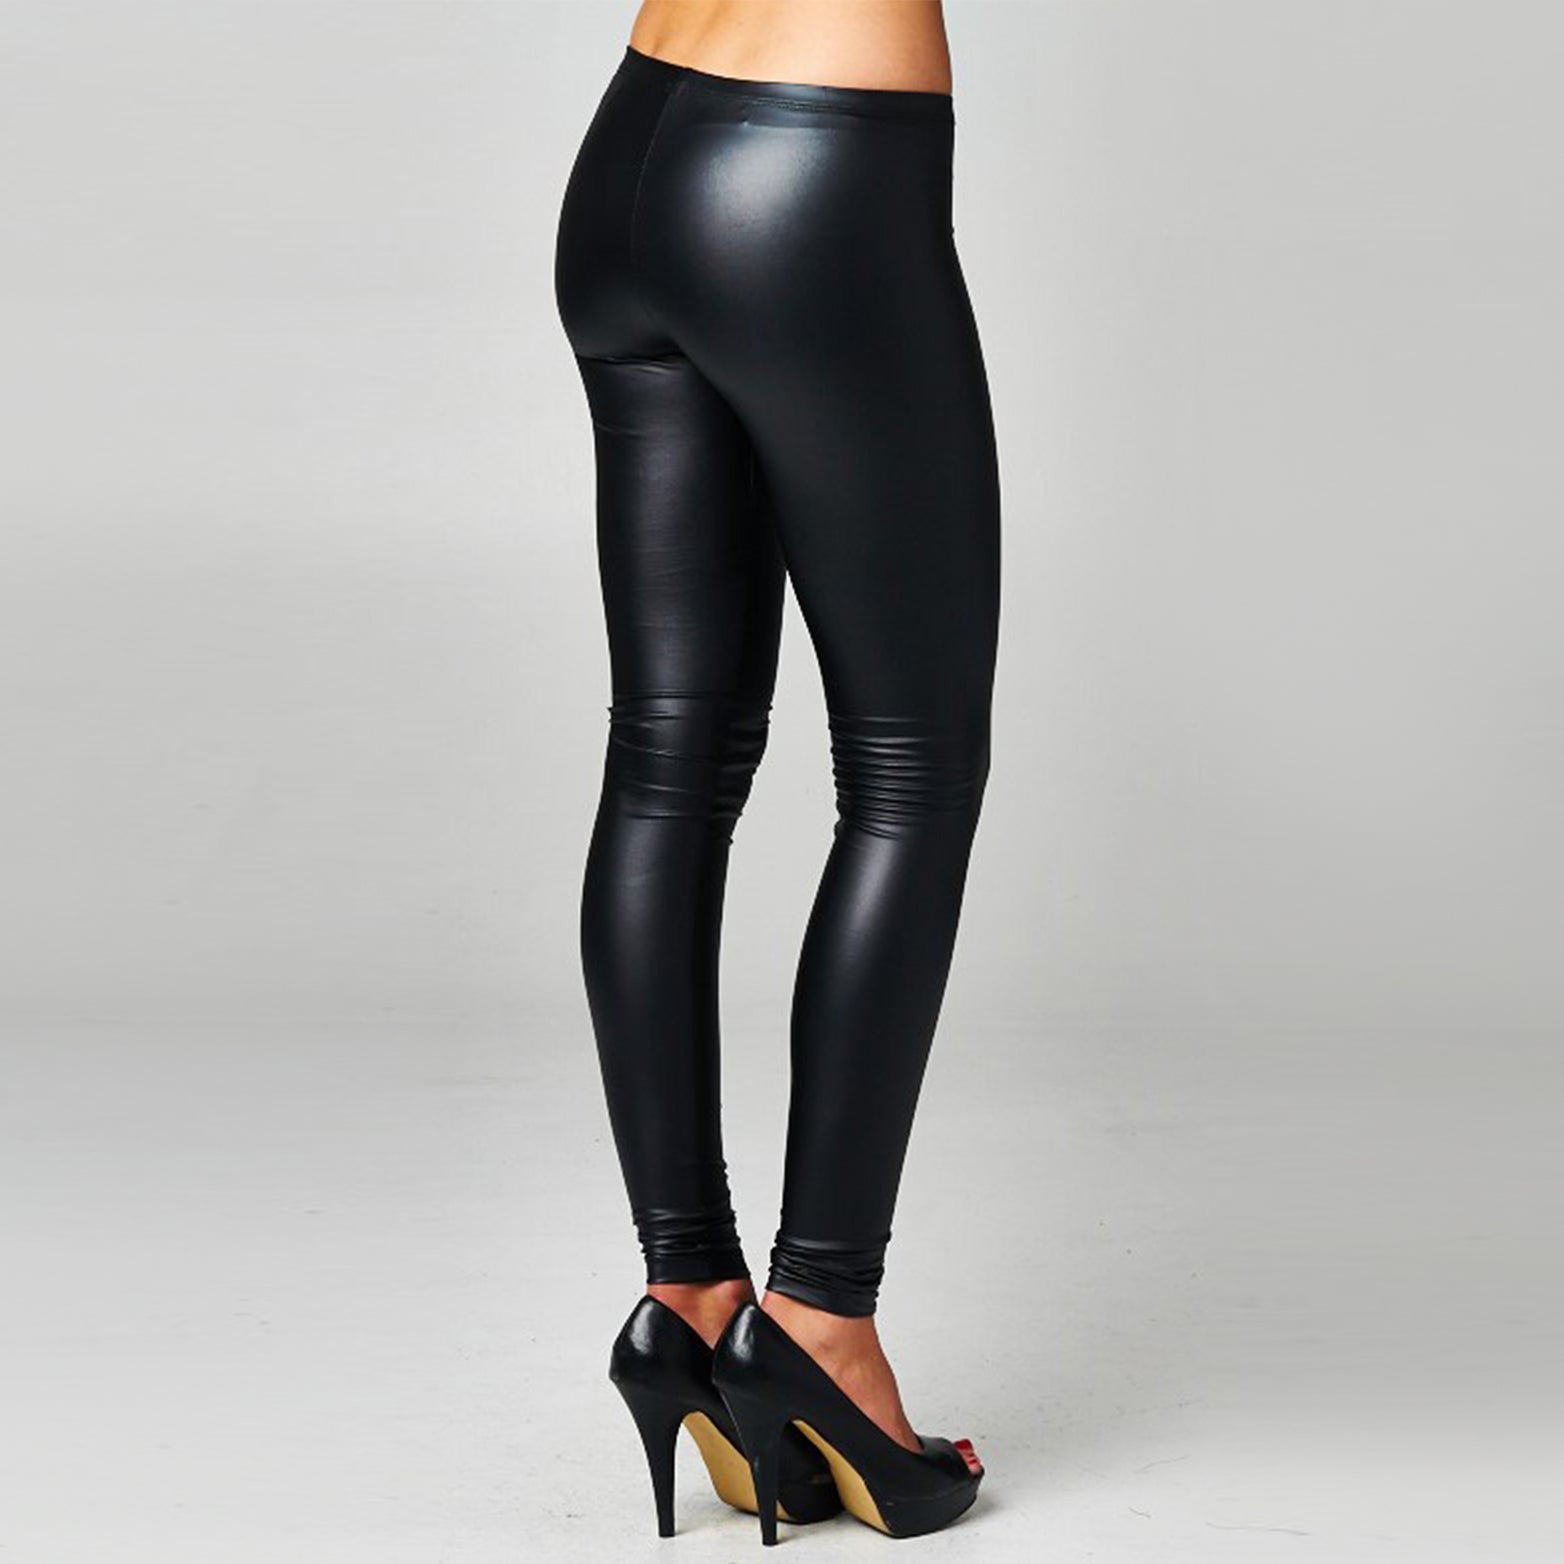 Black Faux Leather Leggings - Love, Kuza